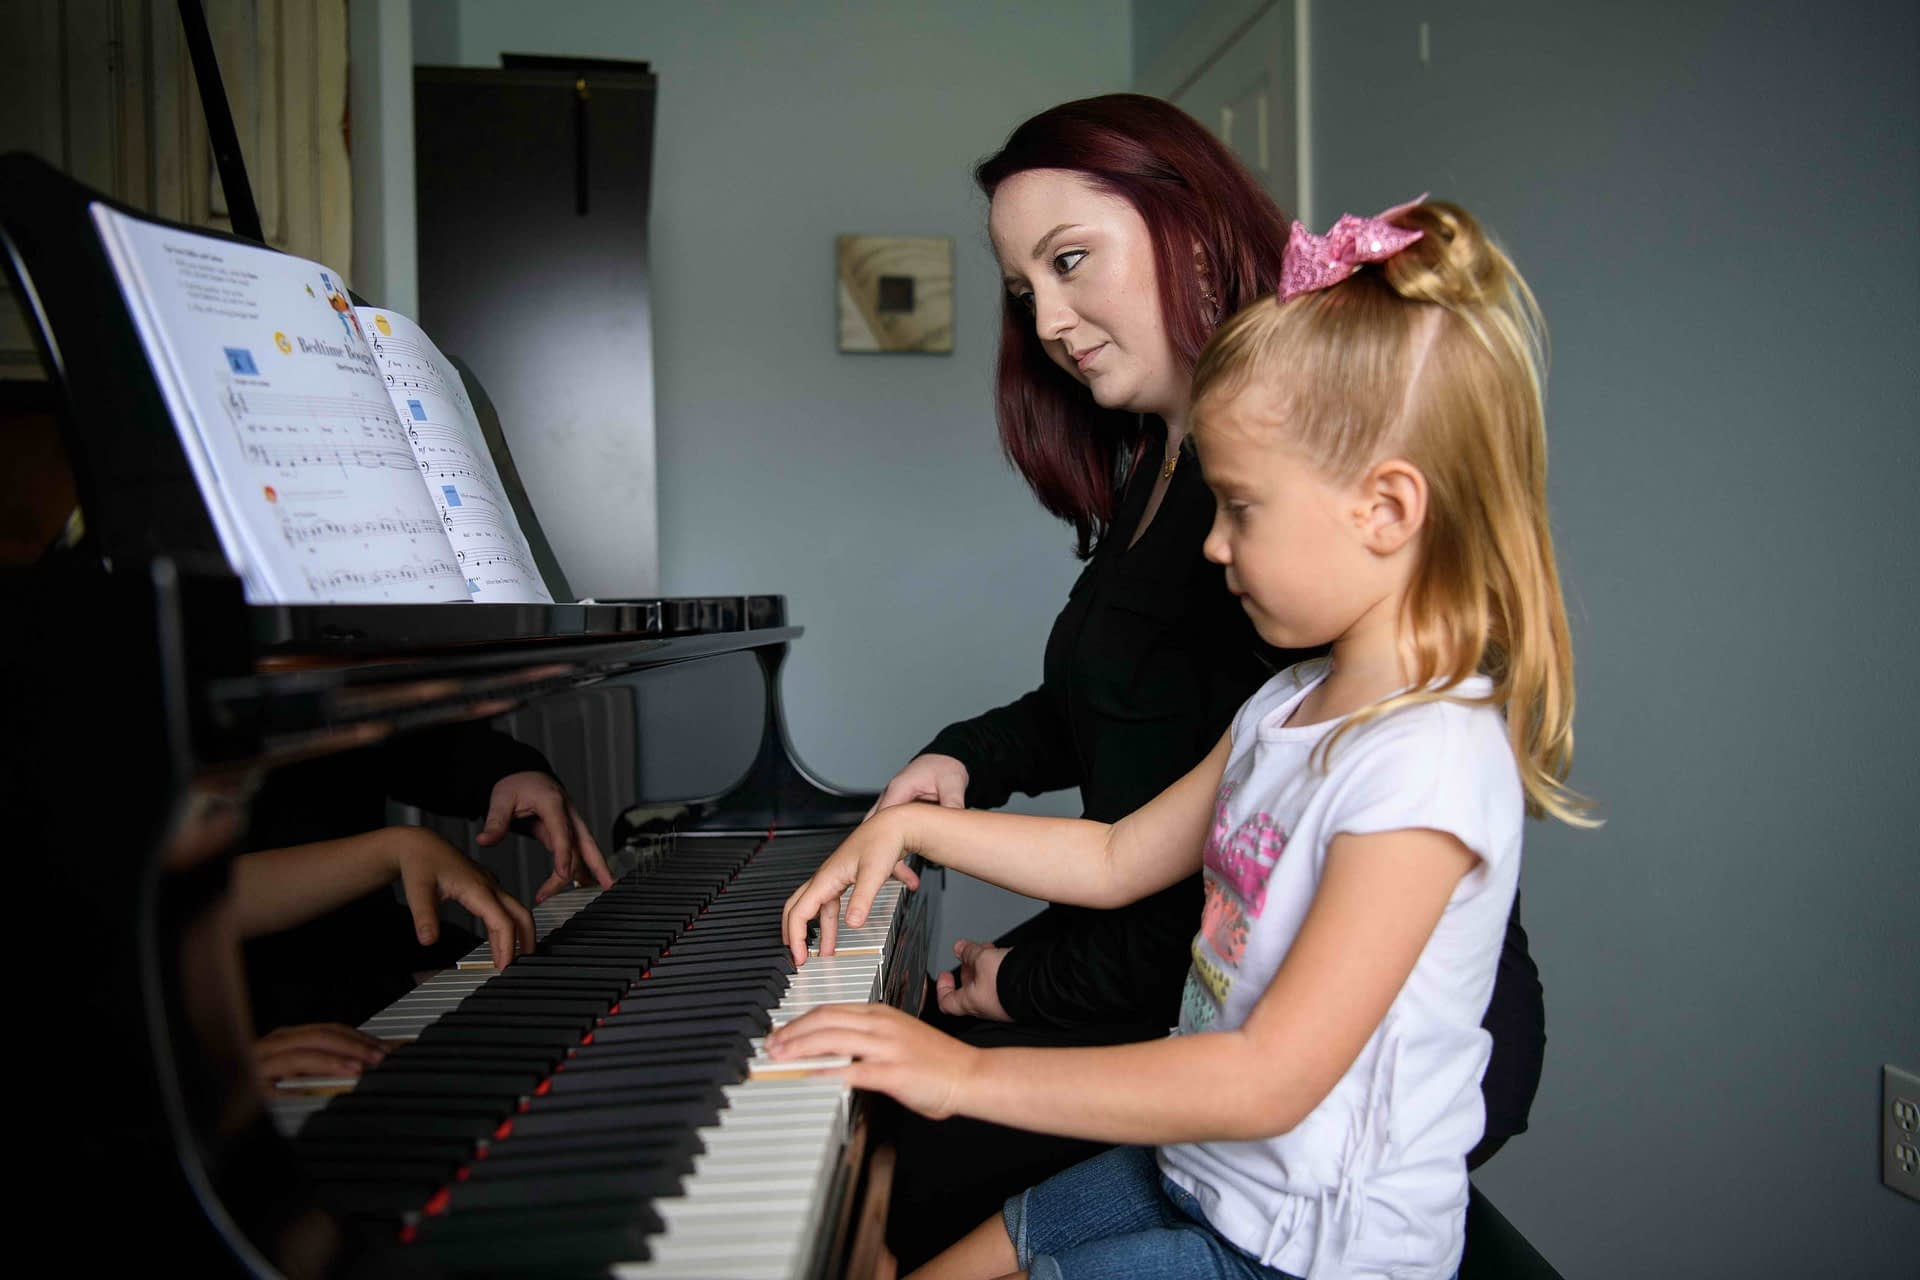 Teacher and young student piano lesson